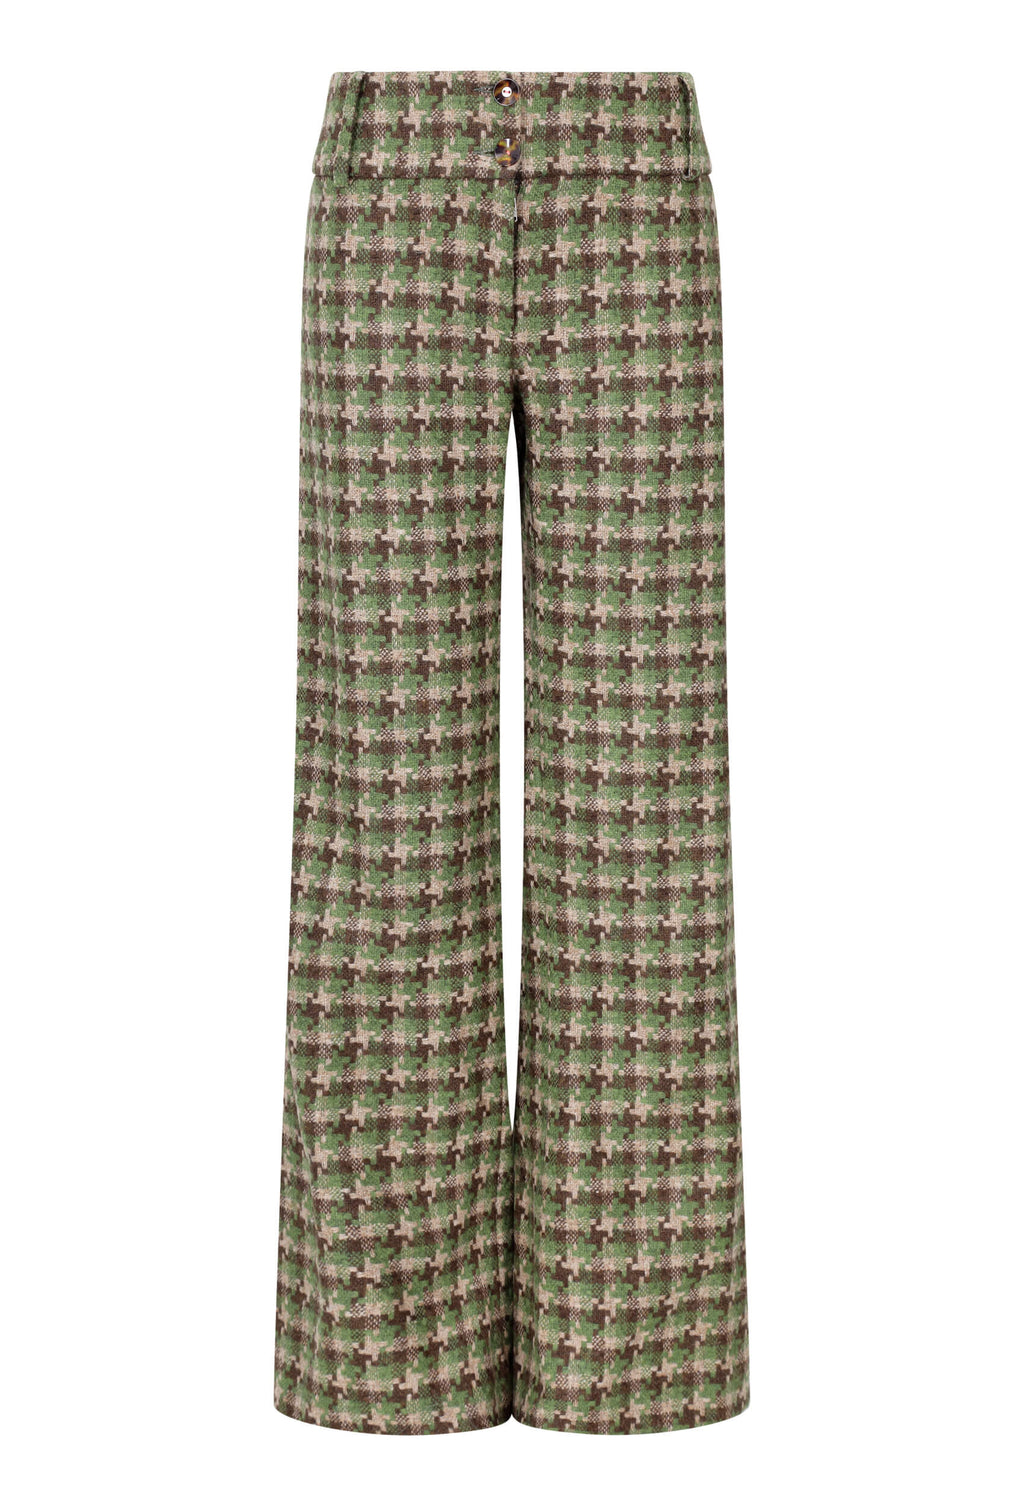 cammo-tweed-womens-flared-trousers